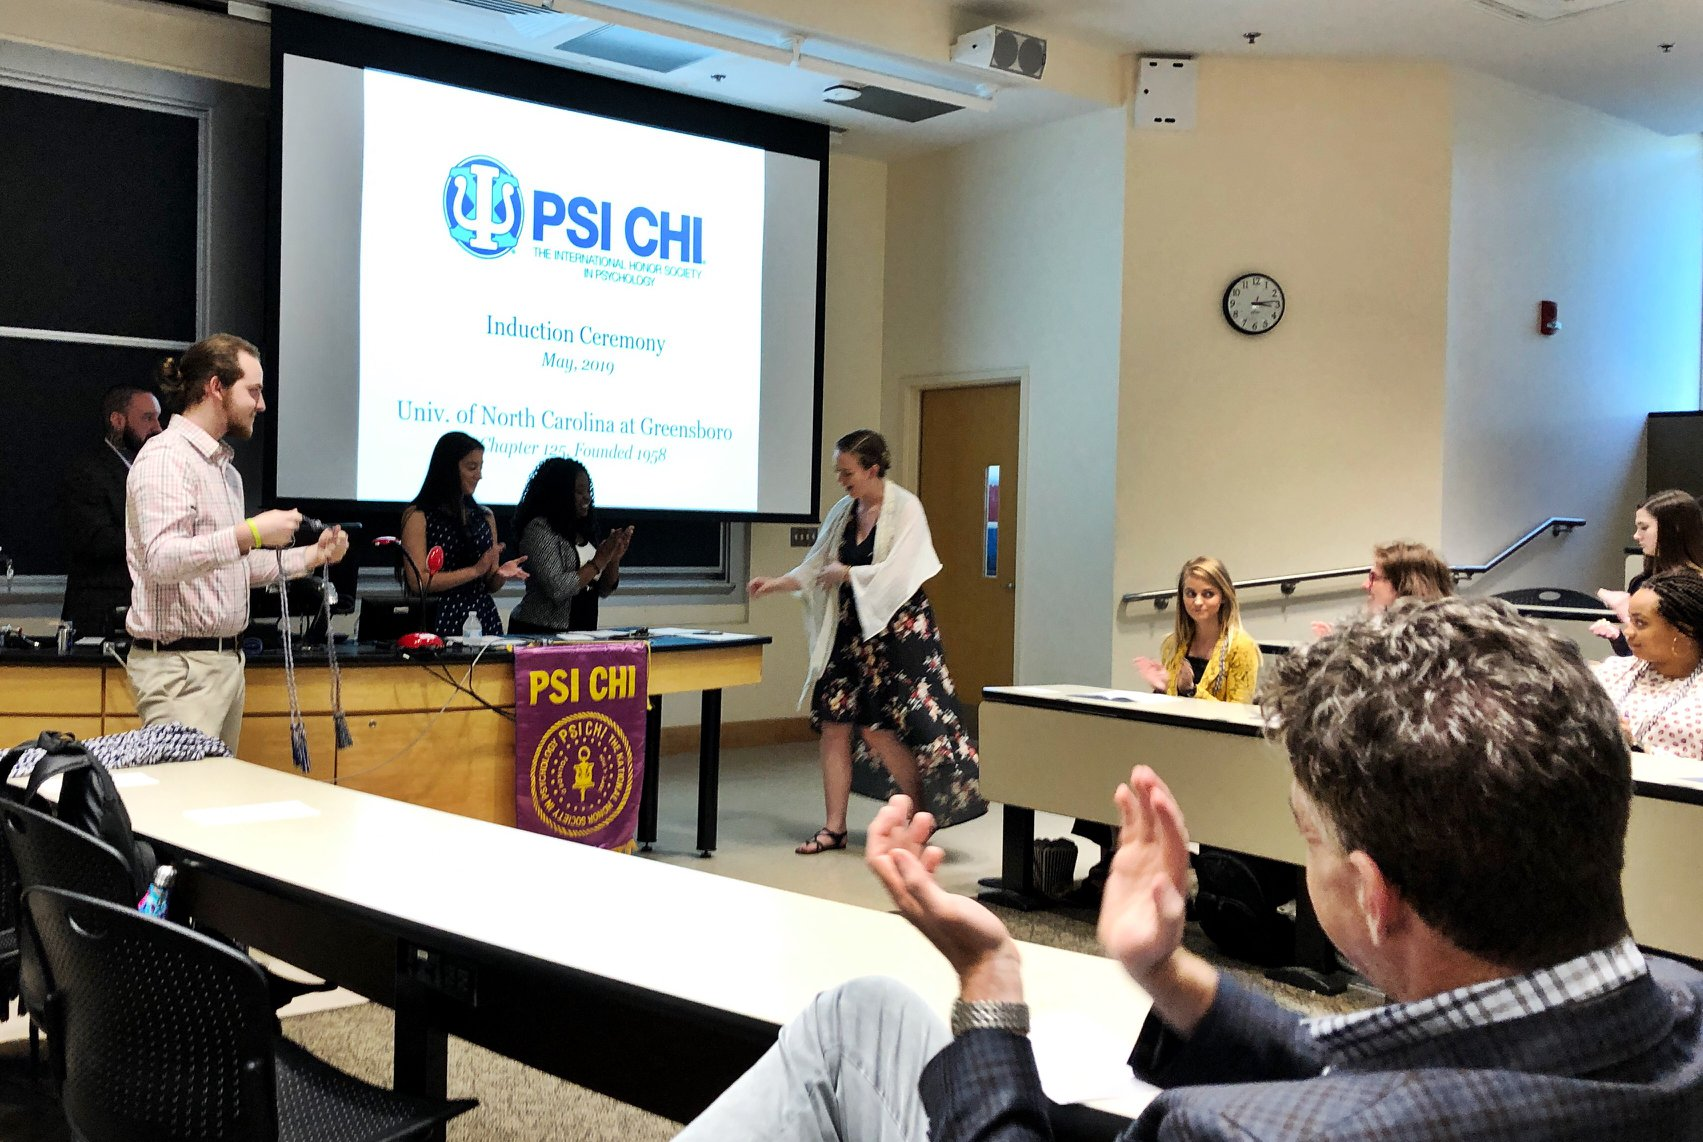 Abby being inducted into Psi Chi